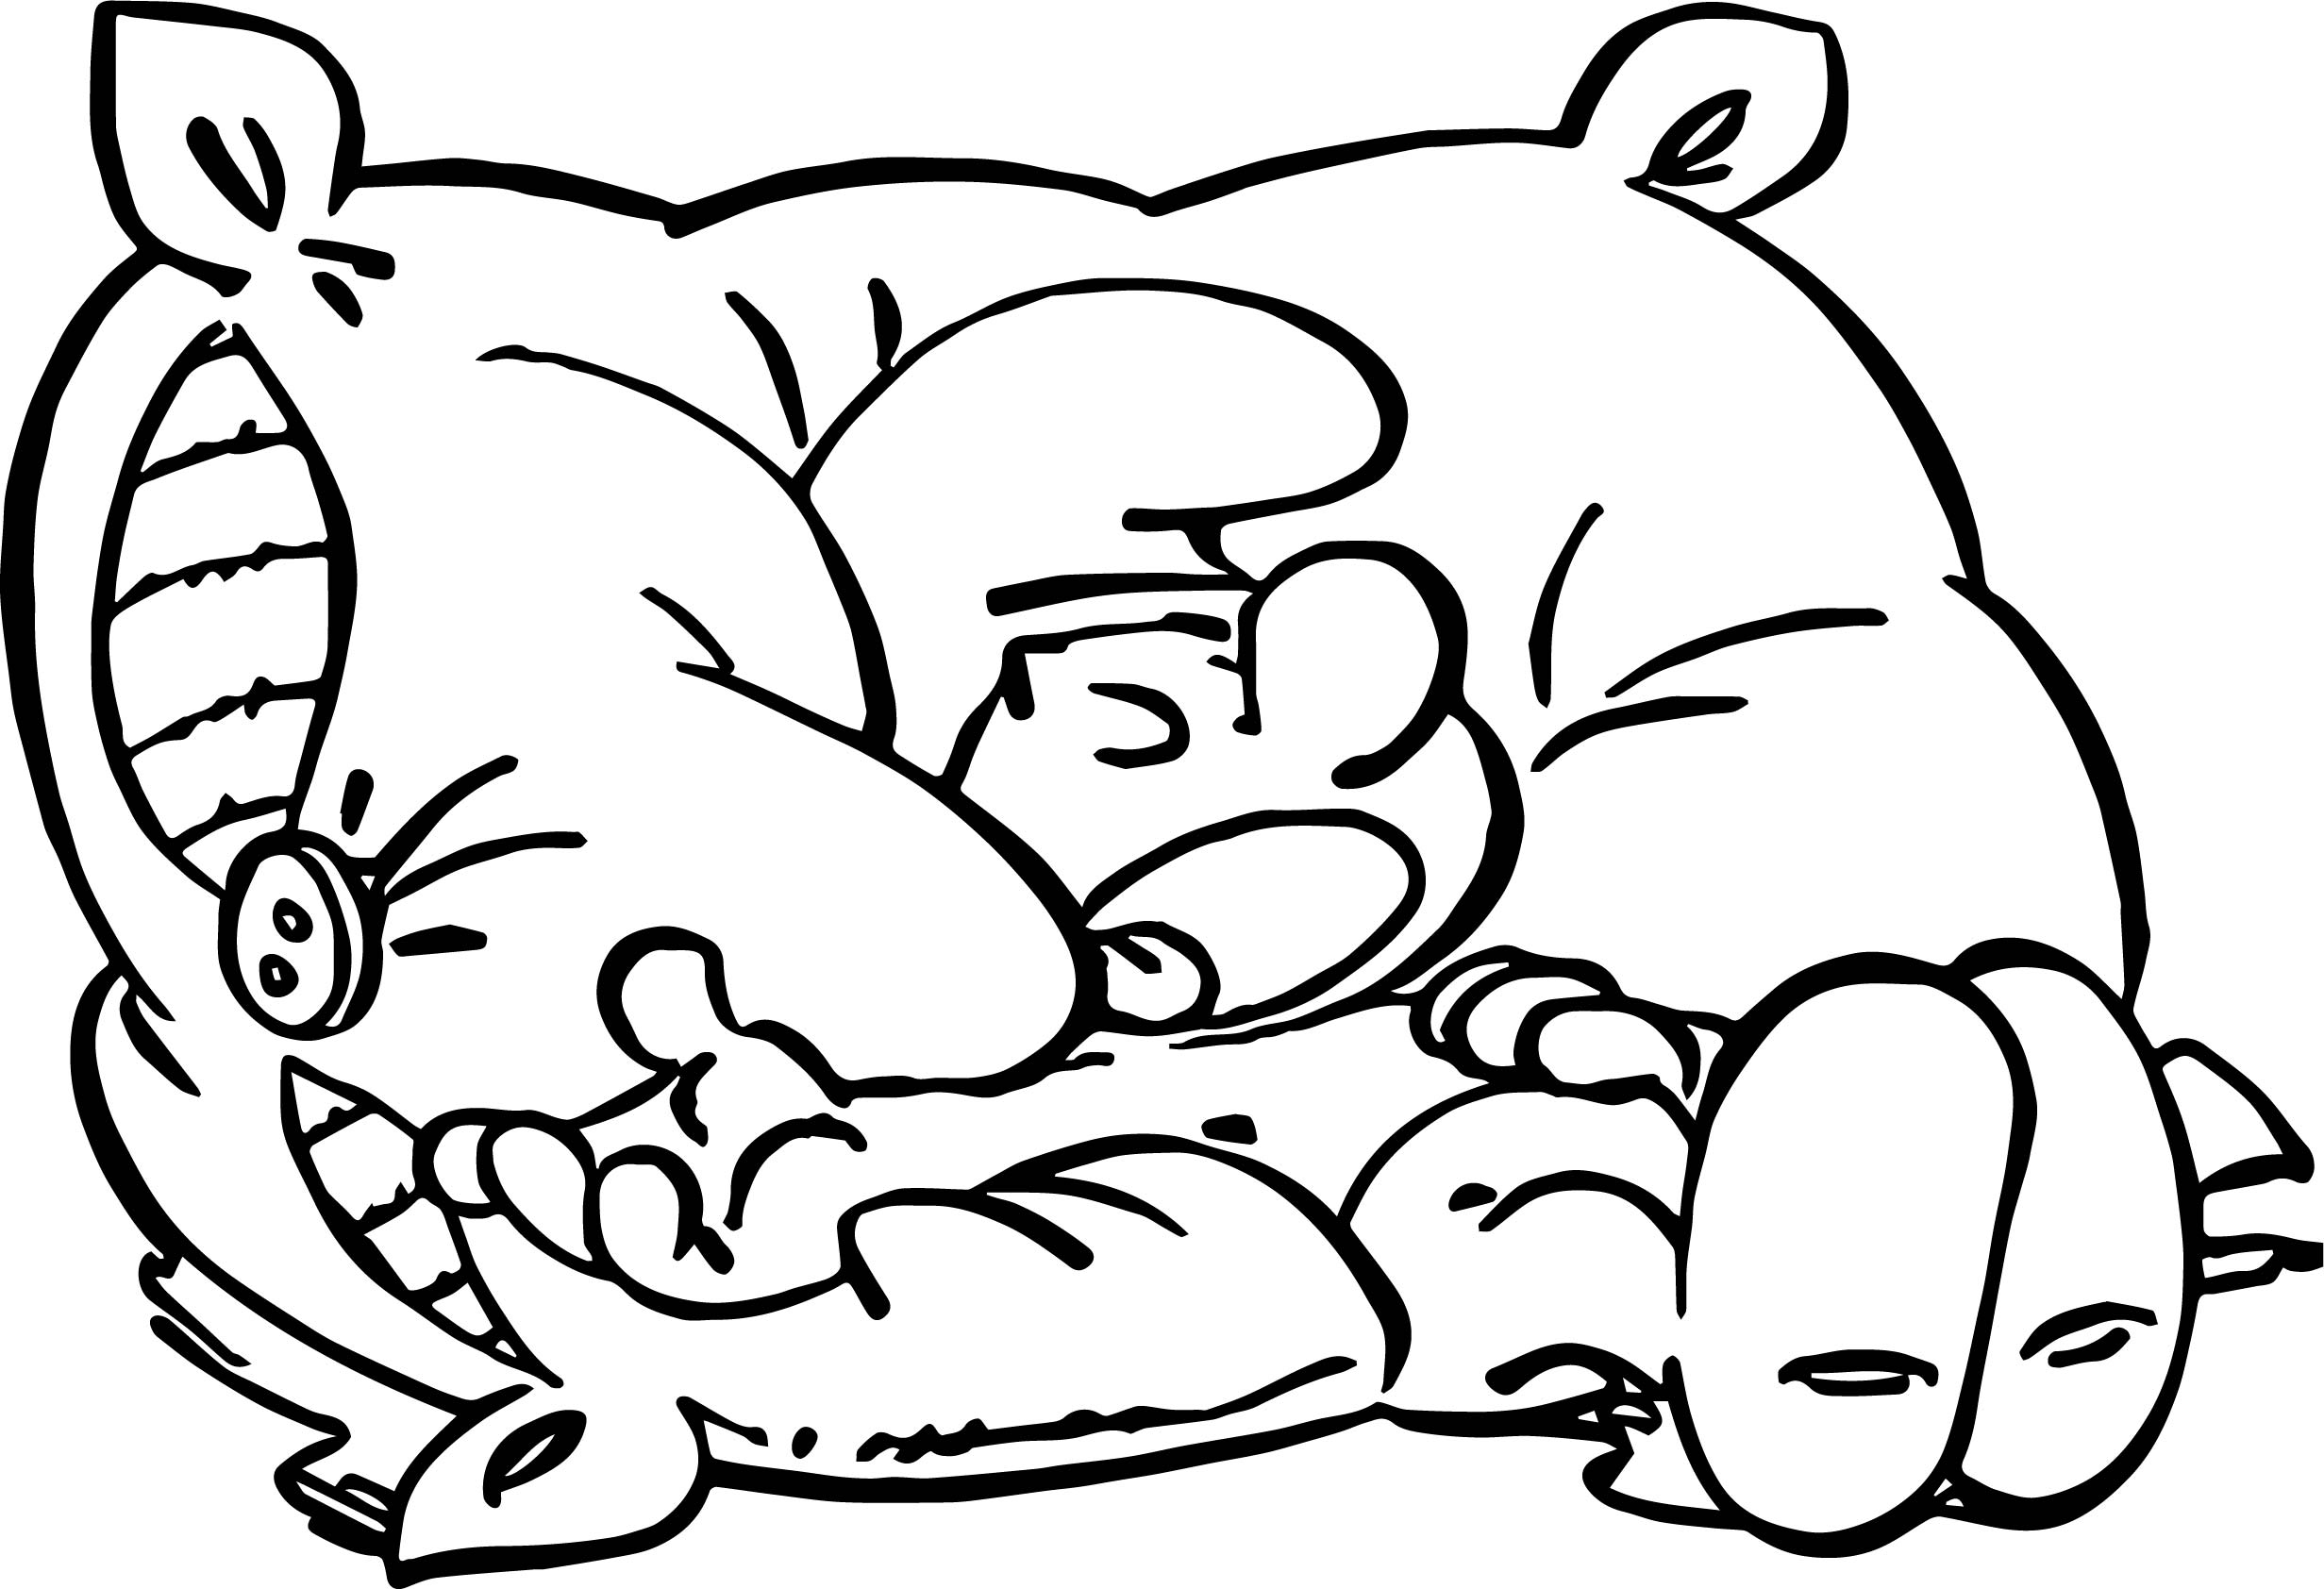 Sleepy Smurf On Pillow Coloring Page